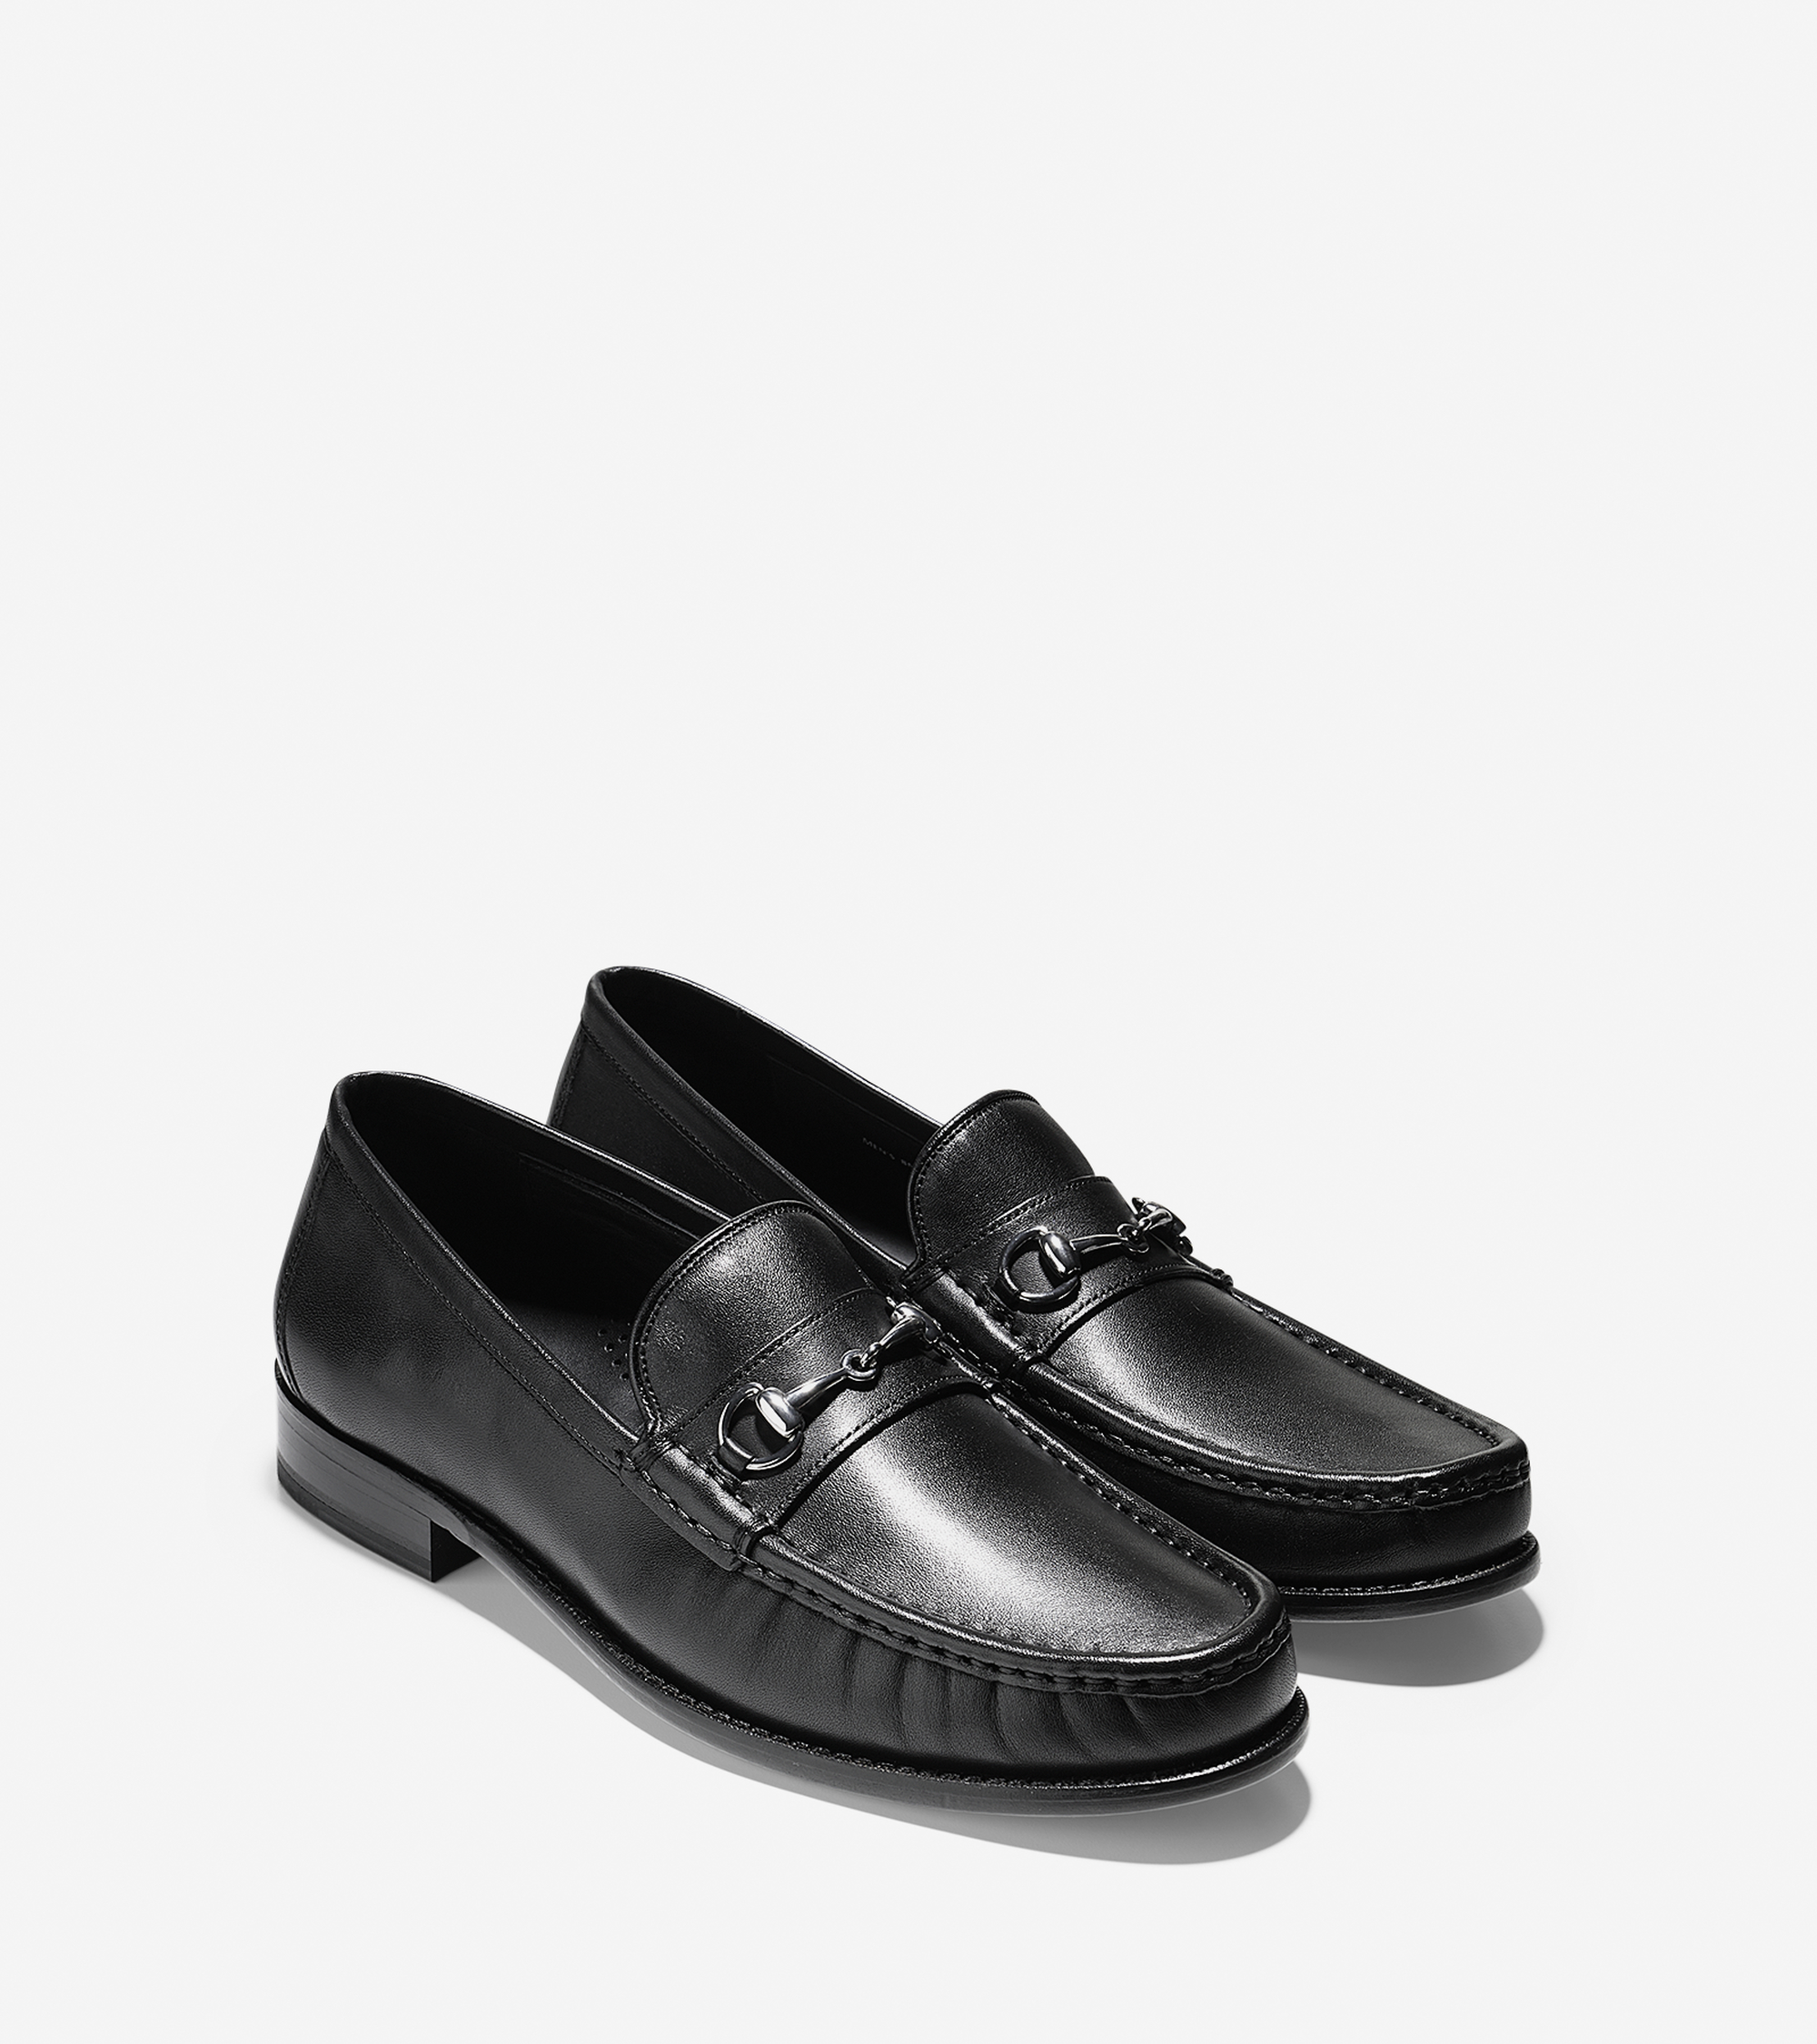 Loafers For Men Saks Images About Mens Shoes On